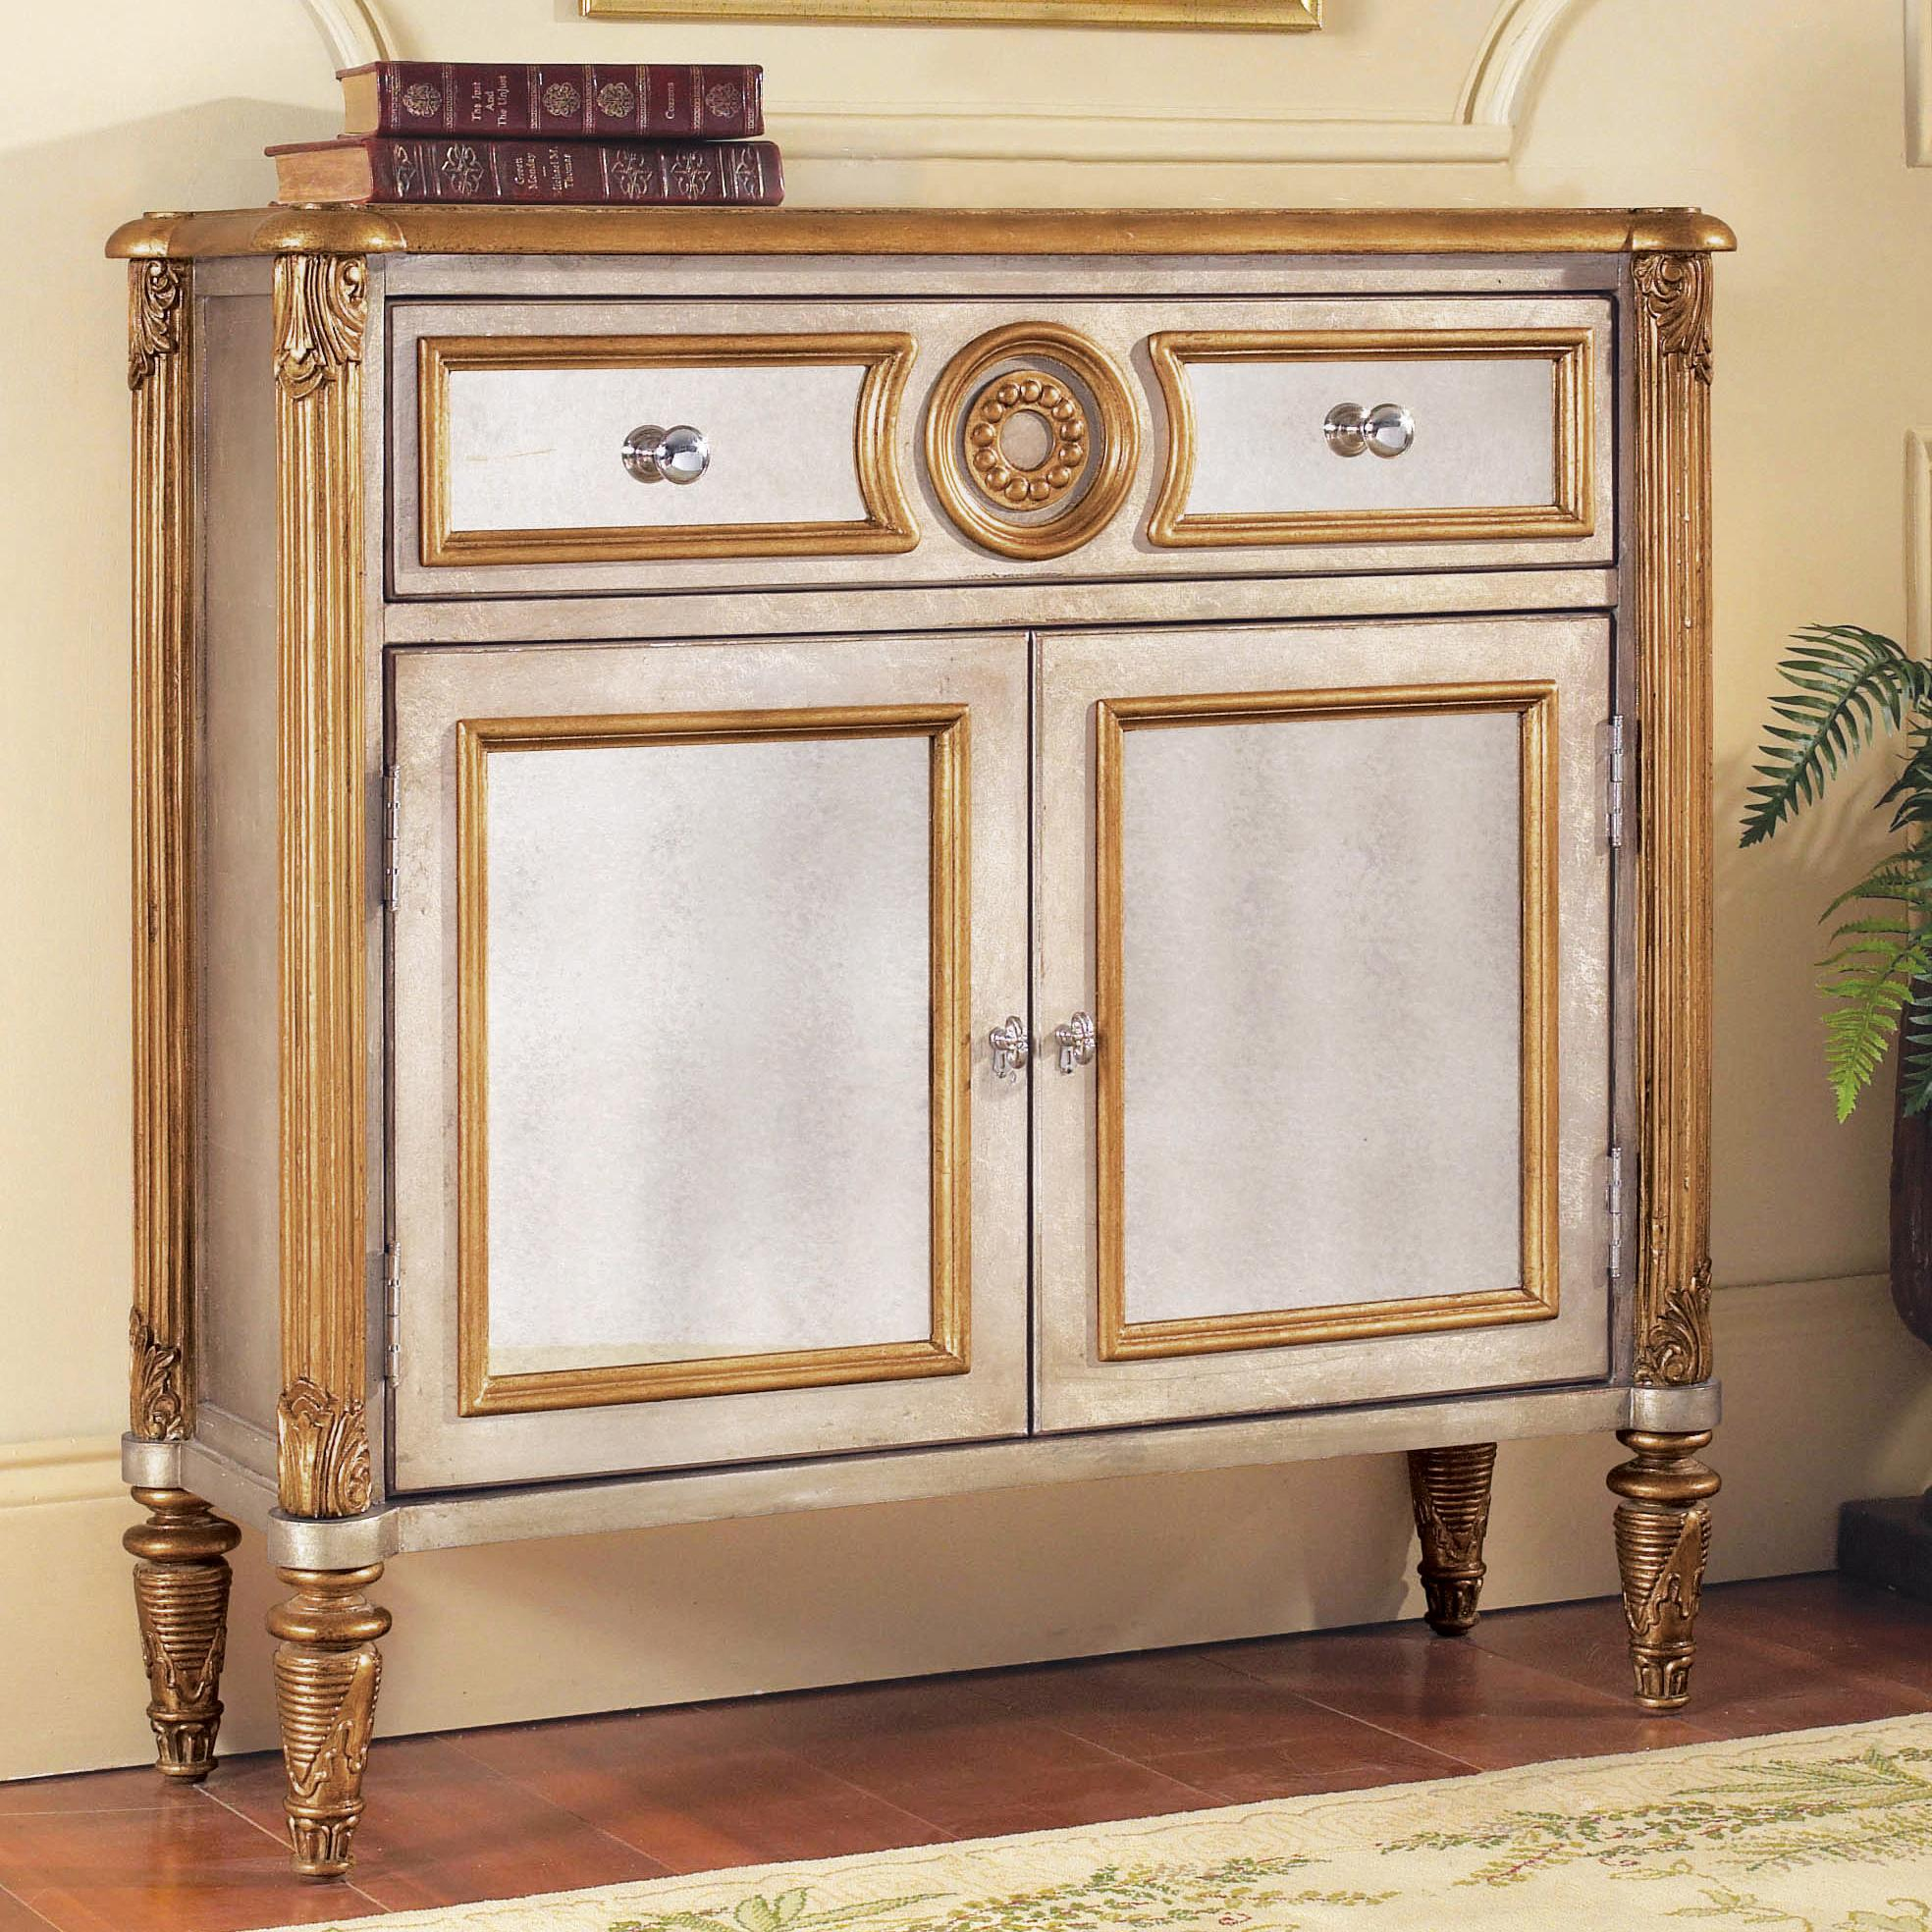 Pulaski Furniture Accents Mirrored Hall Chest - Item Number: 739277